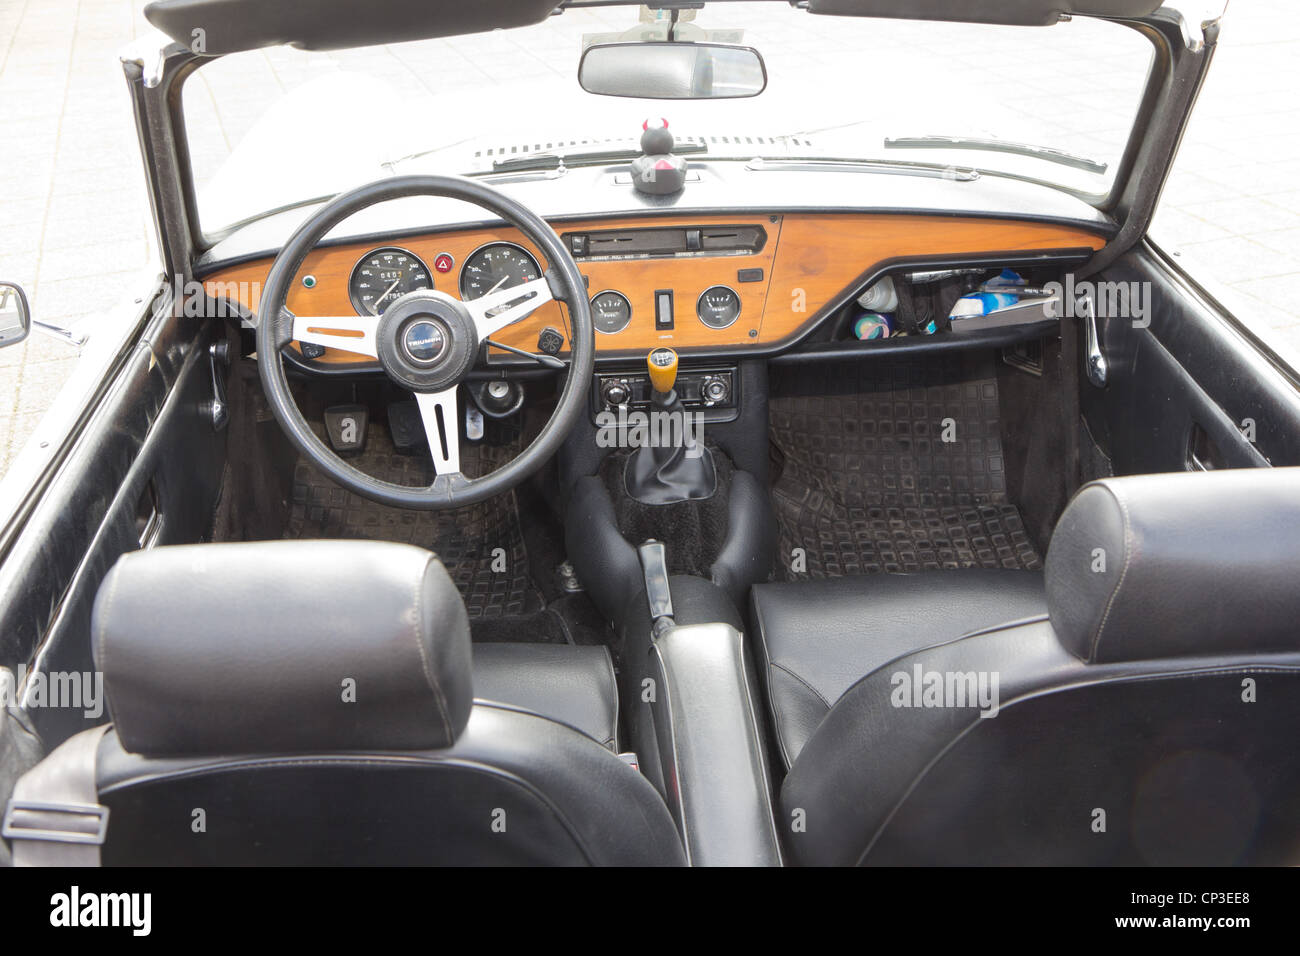 vintage race car triumph spitfire mk i interior from 1964 stock photo royalty free image. Black Bedroom Furniture Sets. Home Design Ideas